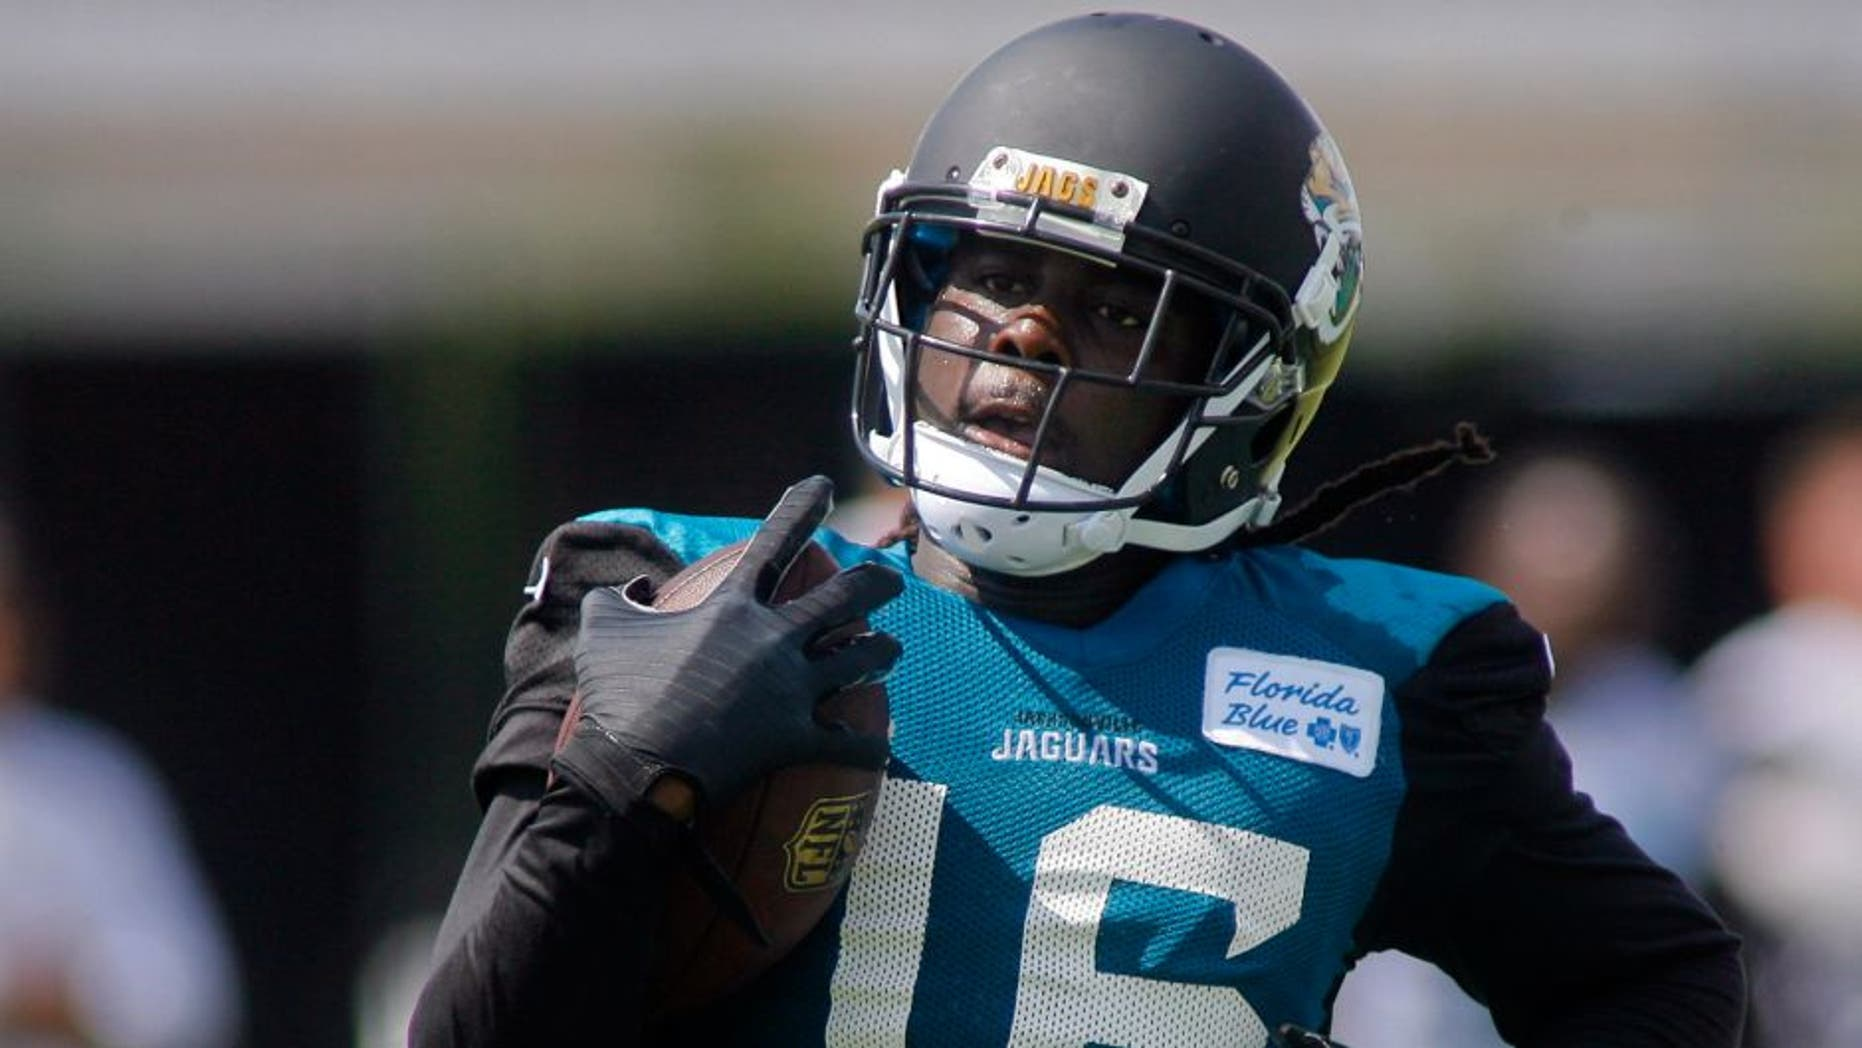 Jul 25, 2014; Jacksonville, FL, USA; Jacksonville Jaguars wide receiver Denard Robinson (16) runs with the ball during the first day of training camp at Florida Blue Health and Wellness Practice Fields. Mandatory Credit: Phil Sears-USA TODAY Sports